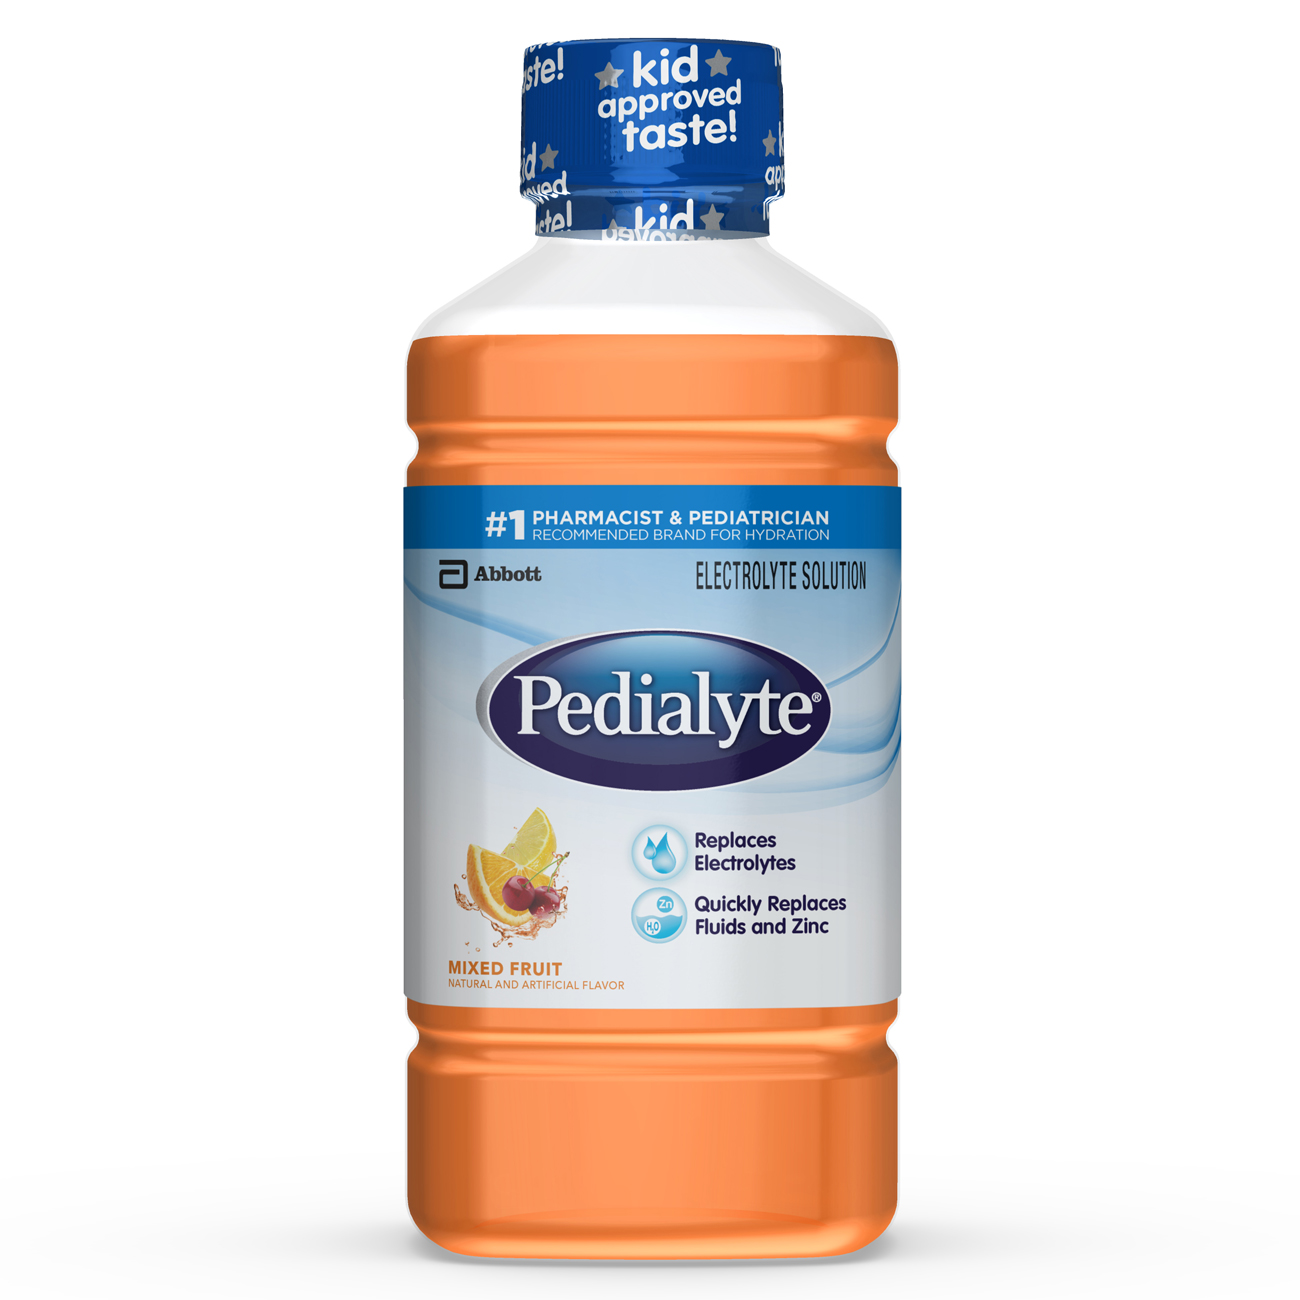 Pedialyte Oral Electrolyte Solution, Fruit, 1-Liter, 8 Count